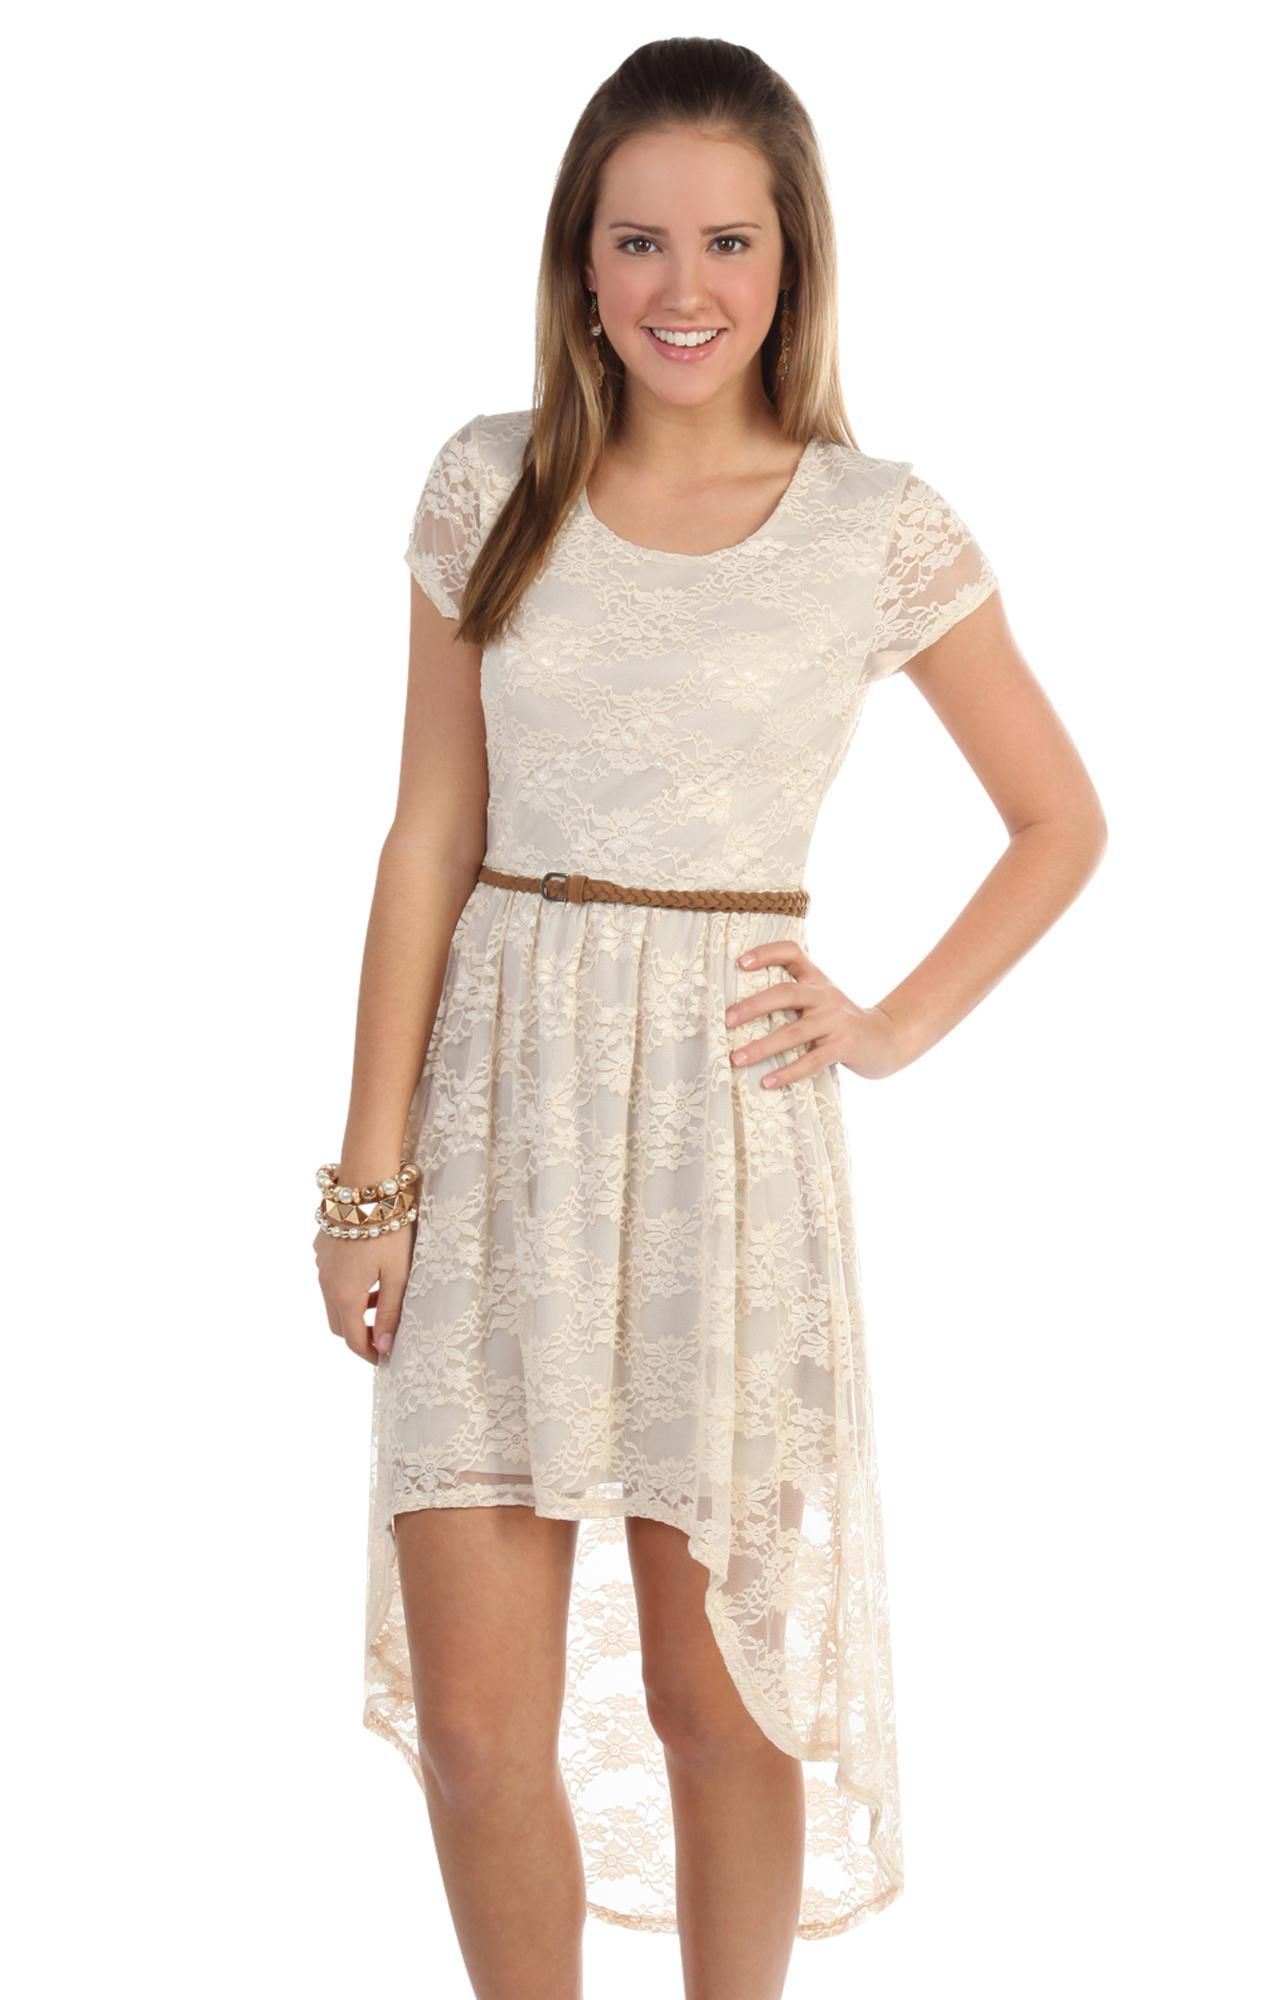 All over lace high low dress with short sleeves and belted waist